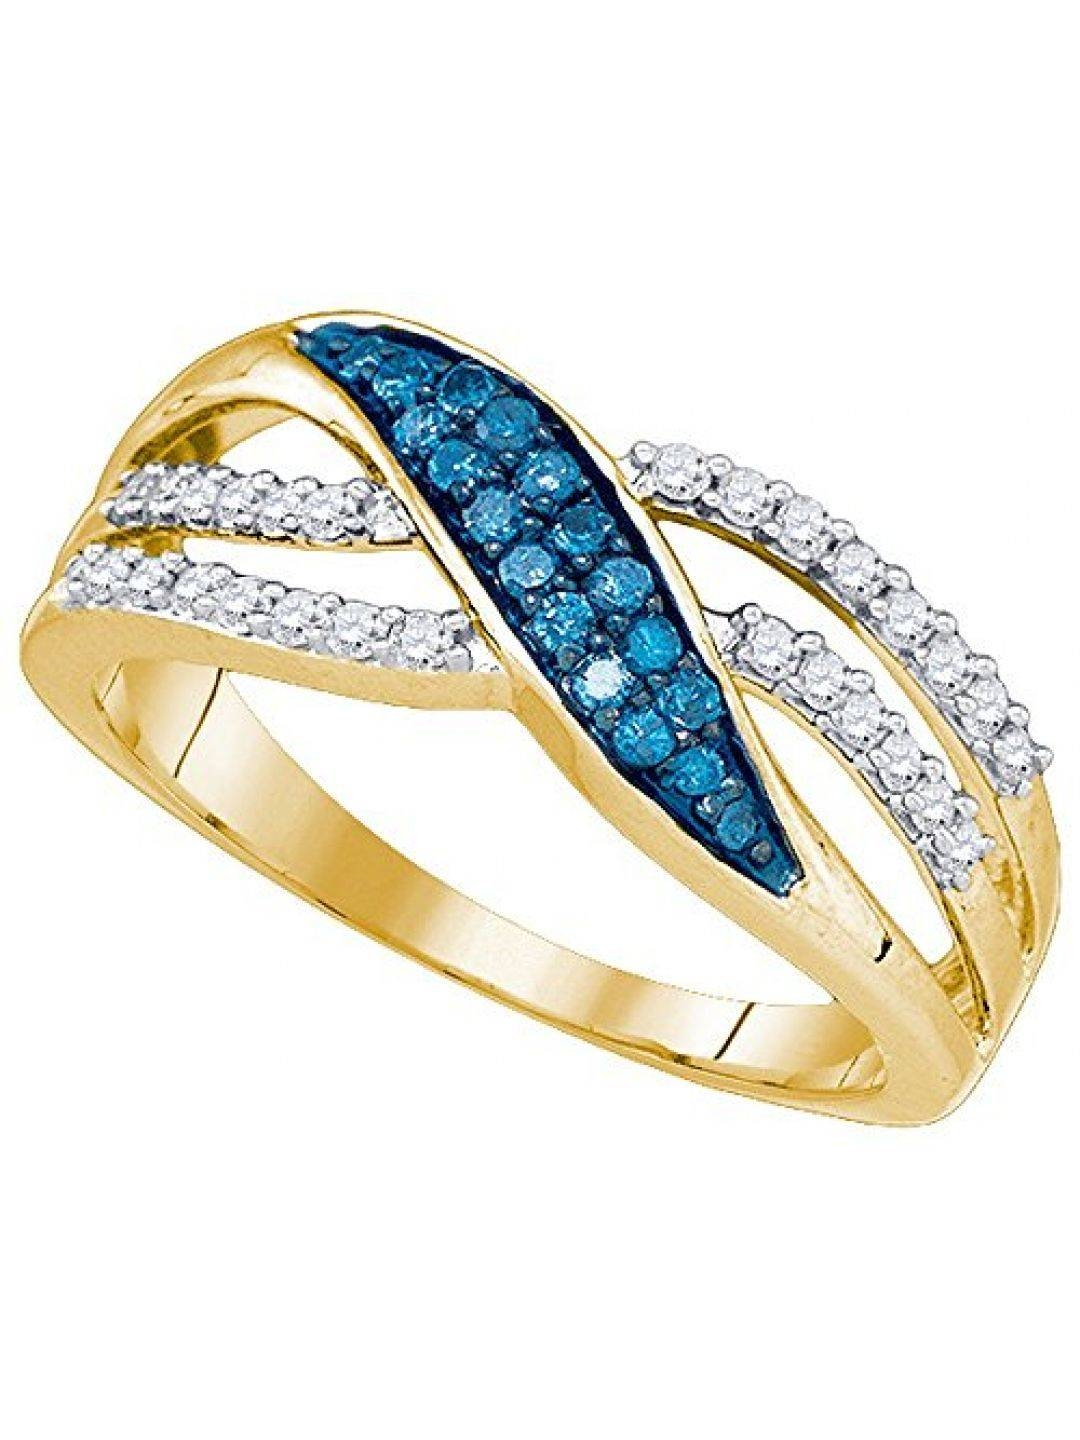 Size 5.5 – 10K Yellow Gold Channel Set Round Cut Blue And White With Regard To Recent Yellow Gold Channel Set Wedding Bands (Gallery 14 of 15)